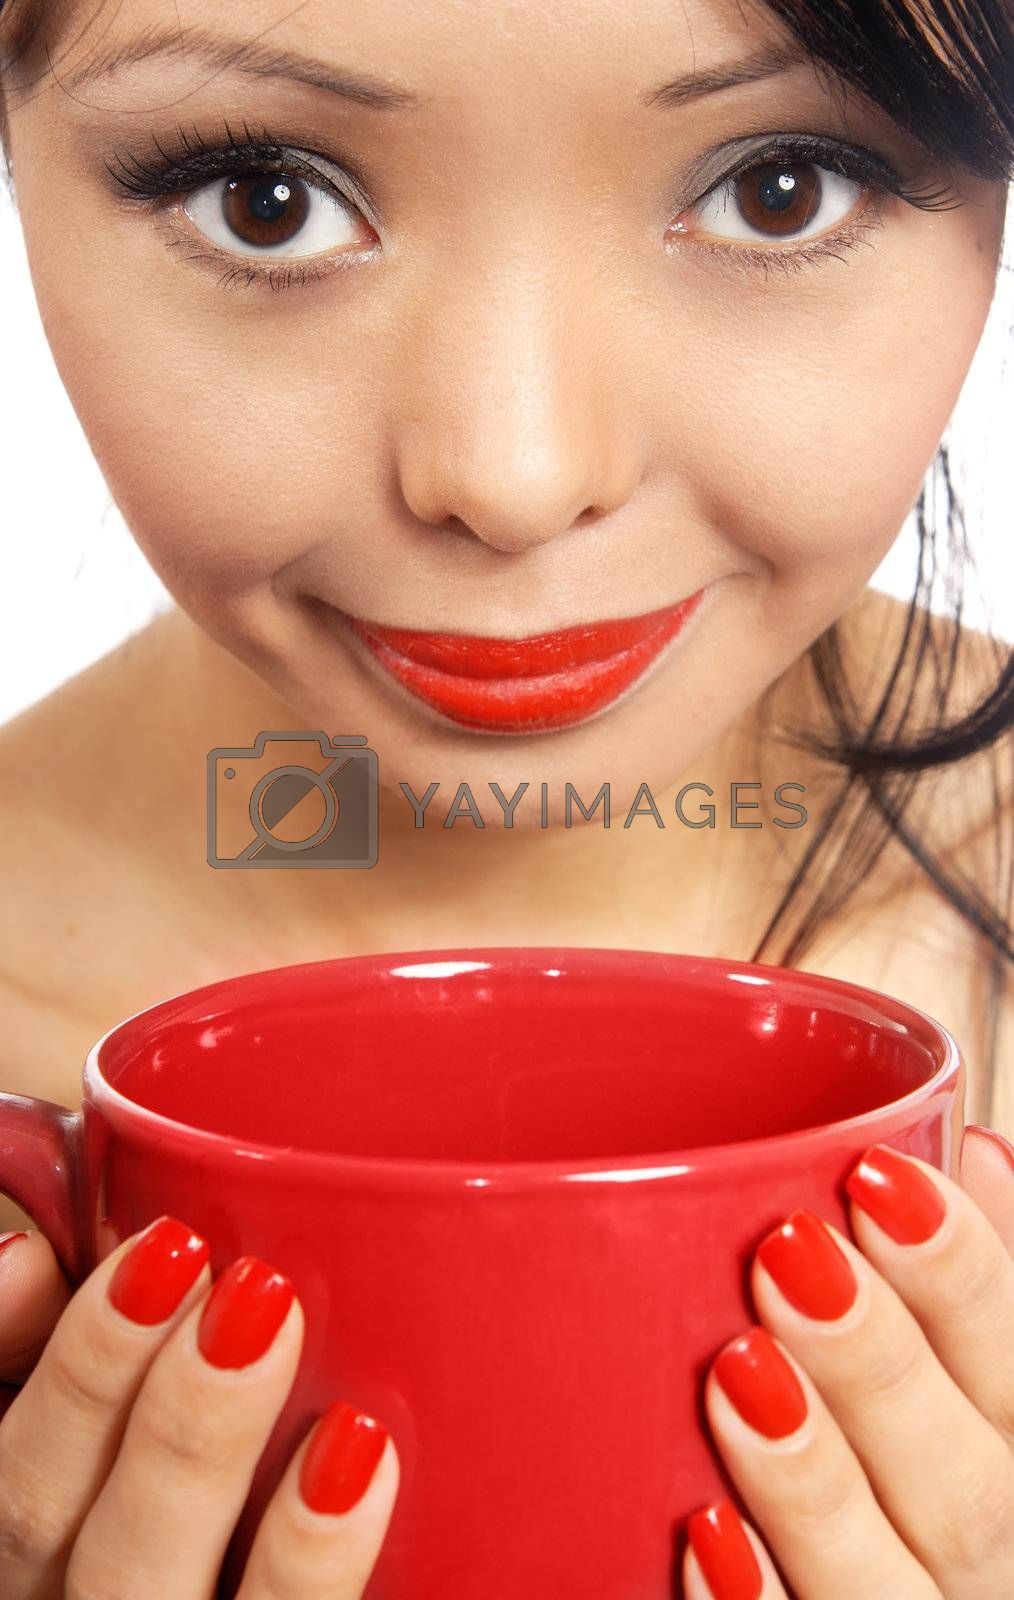 Smiling model holding red cup with drink or eat